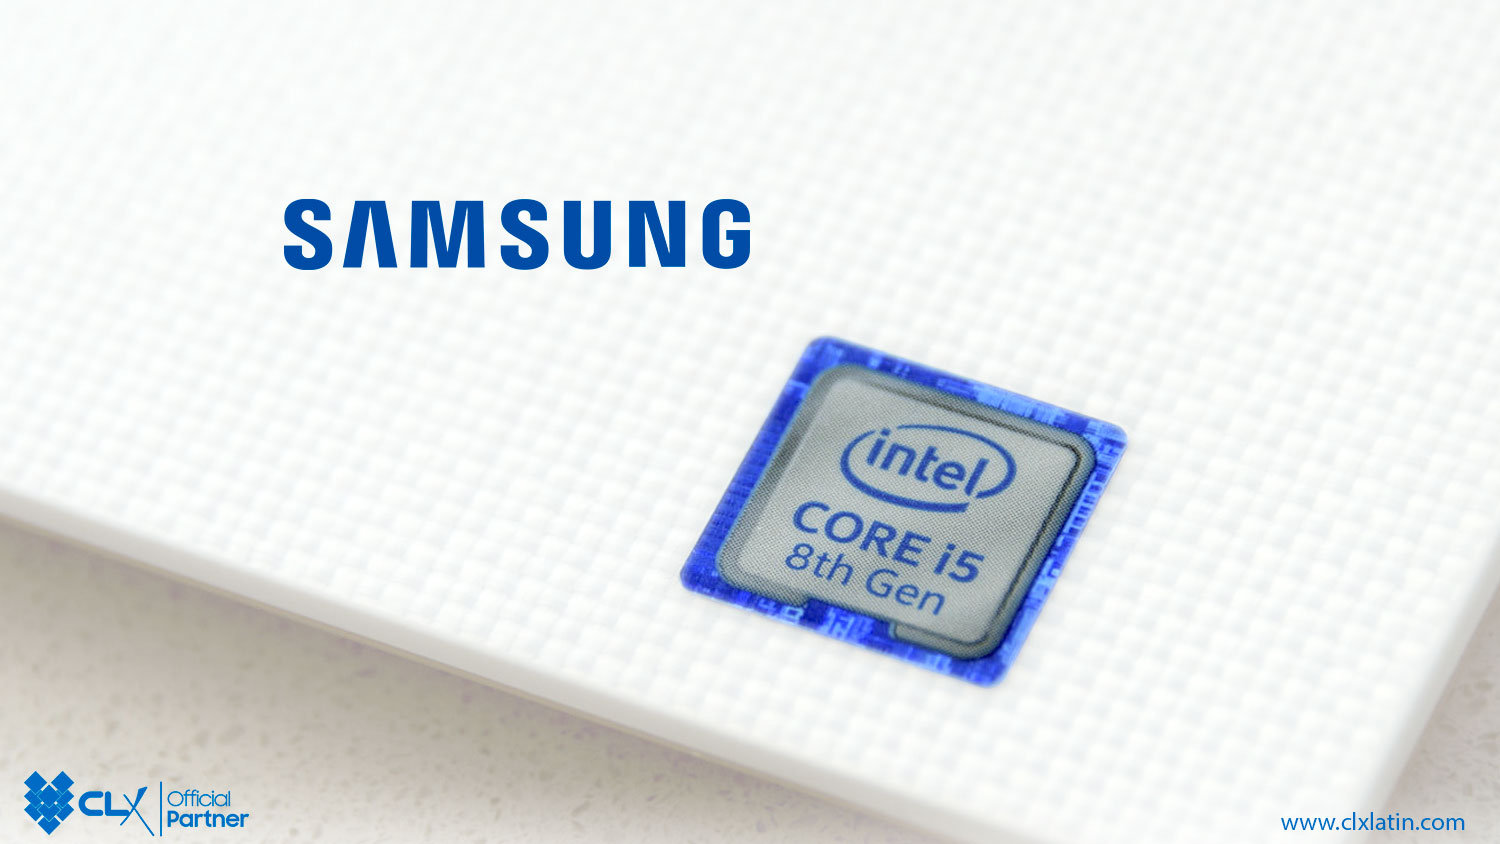 CPUS Intel de Samsung